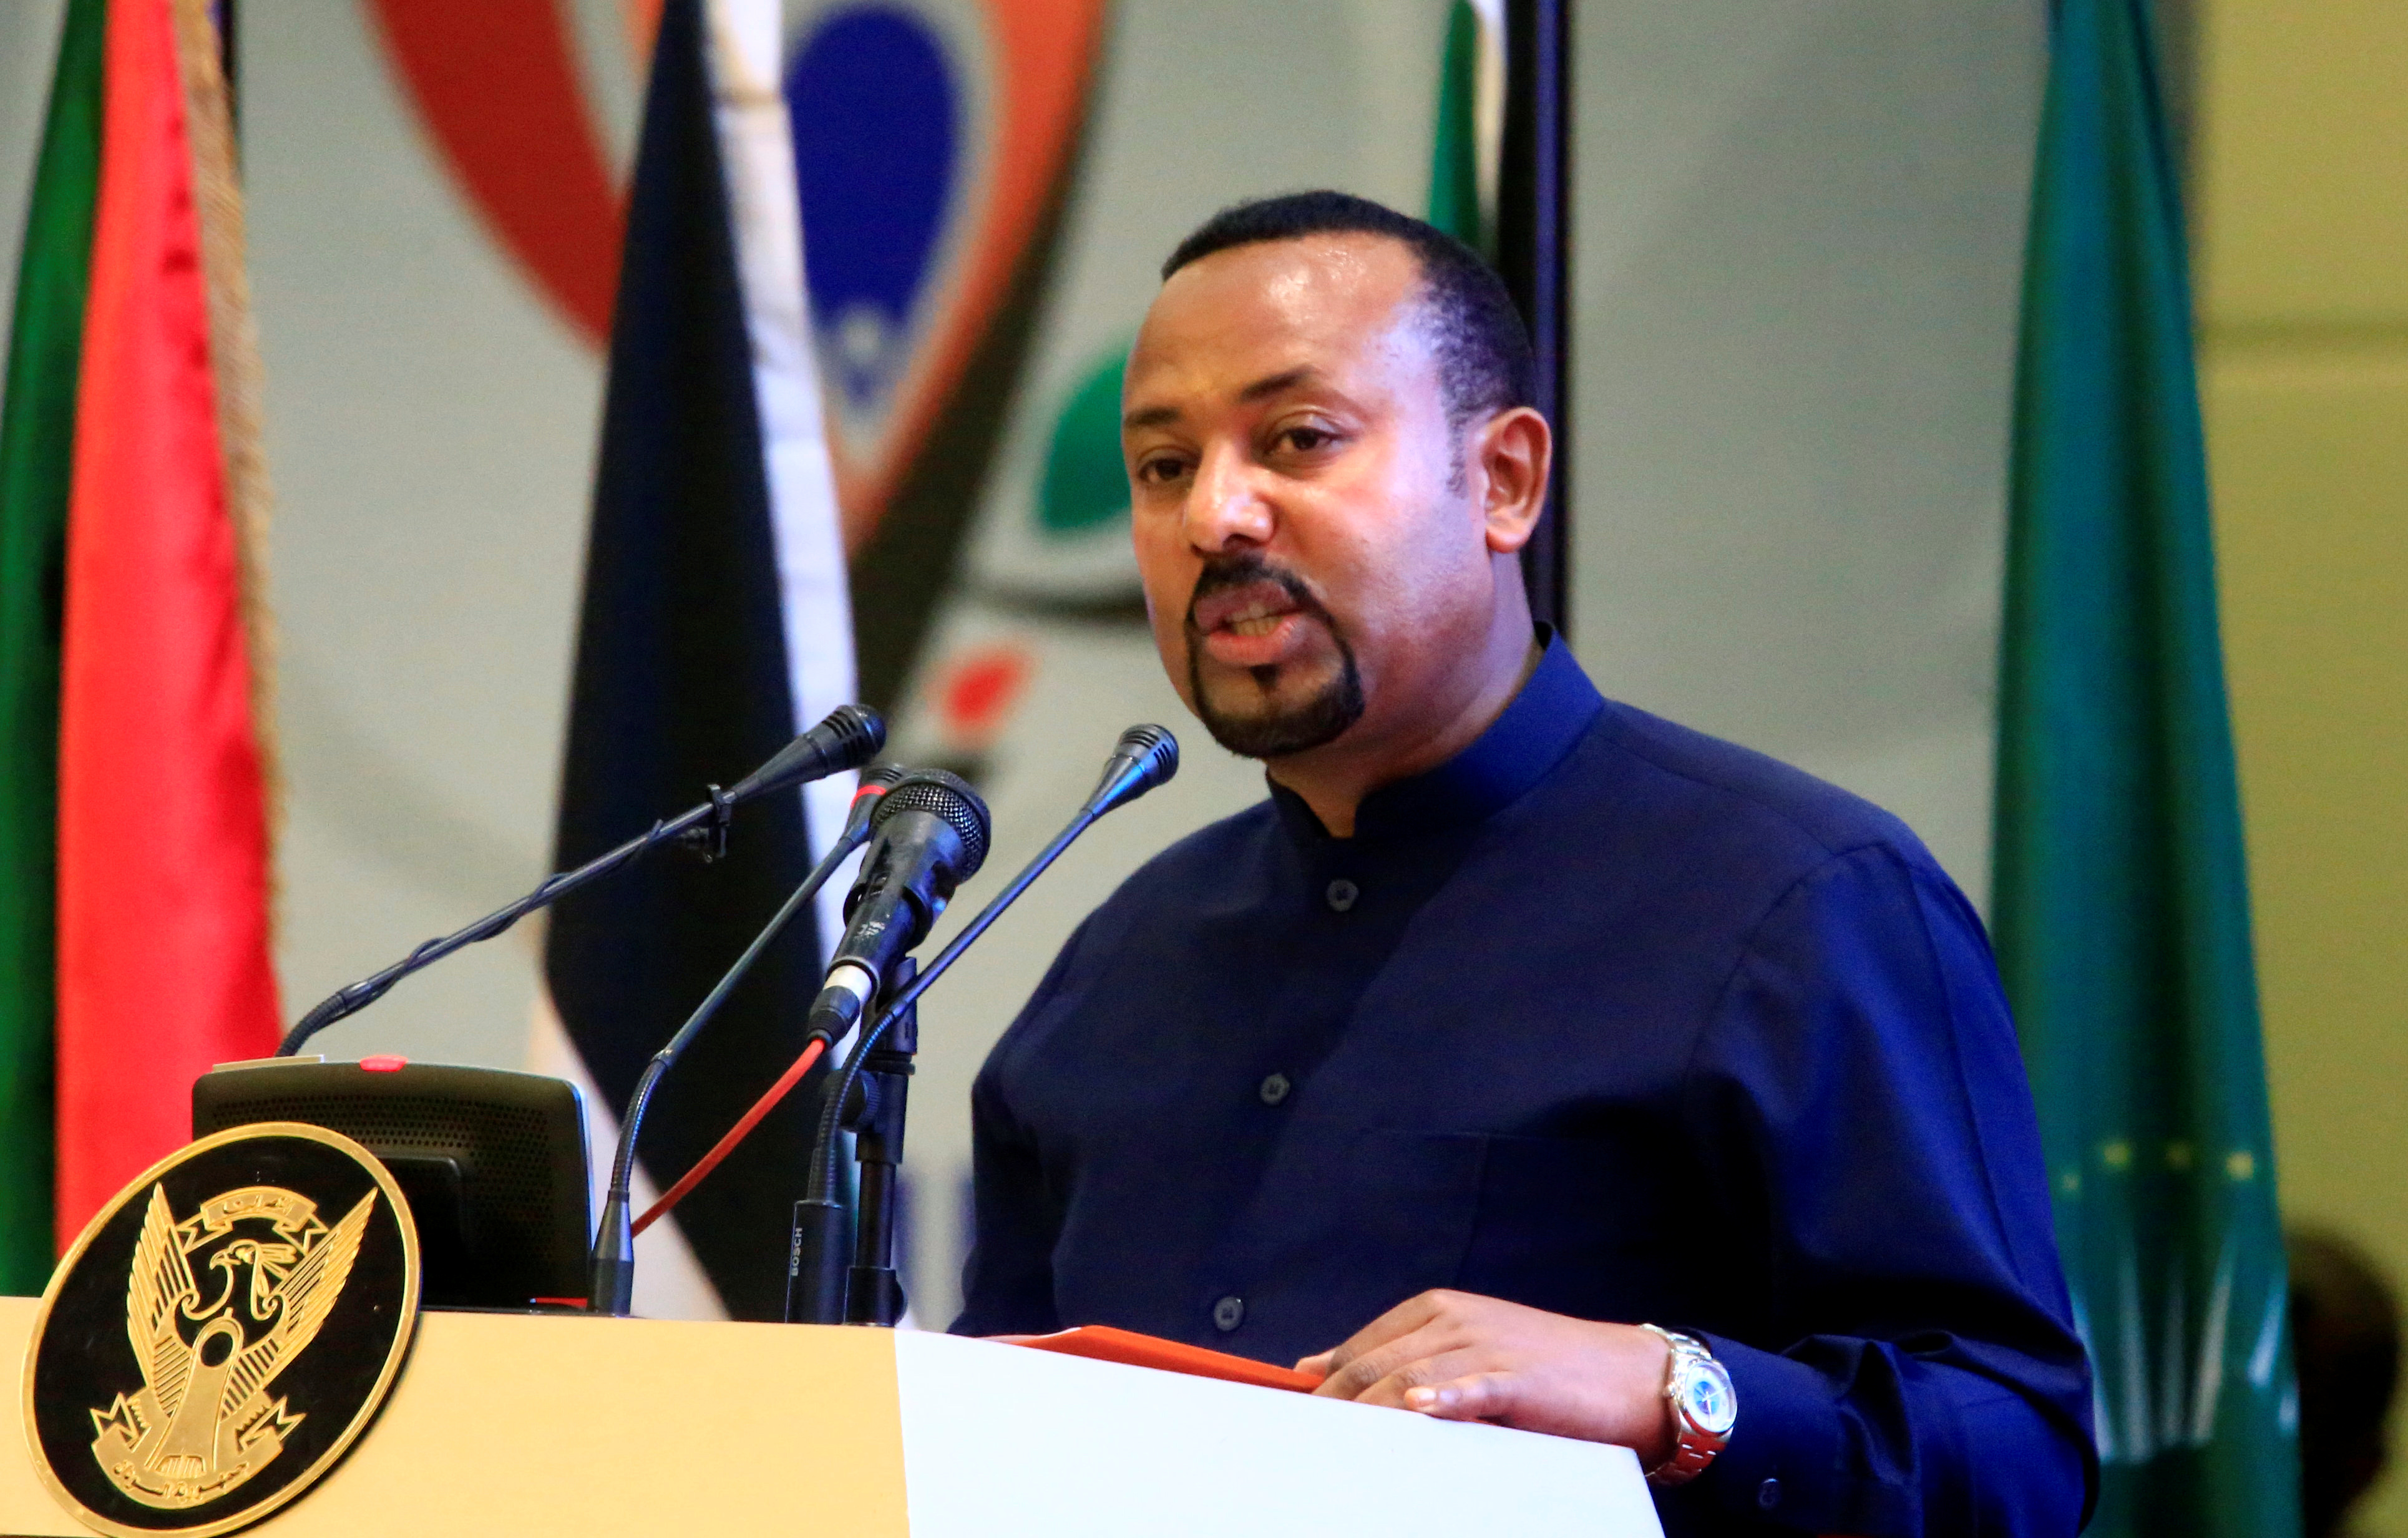 Ethiopia's Prime Minister Abiy Ahmed addresses delegates during the signing of the Sudan's power sharing deal, that paves the way for a transitional government, and eventual elections, following the overthrow of a long-time leader Omar al-Bashir, in Khartoum, Sudan, August 17, 2019. REUTERS/Mohamed Nureldin Abdallah - RC138A0BD790